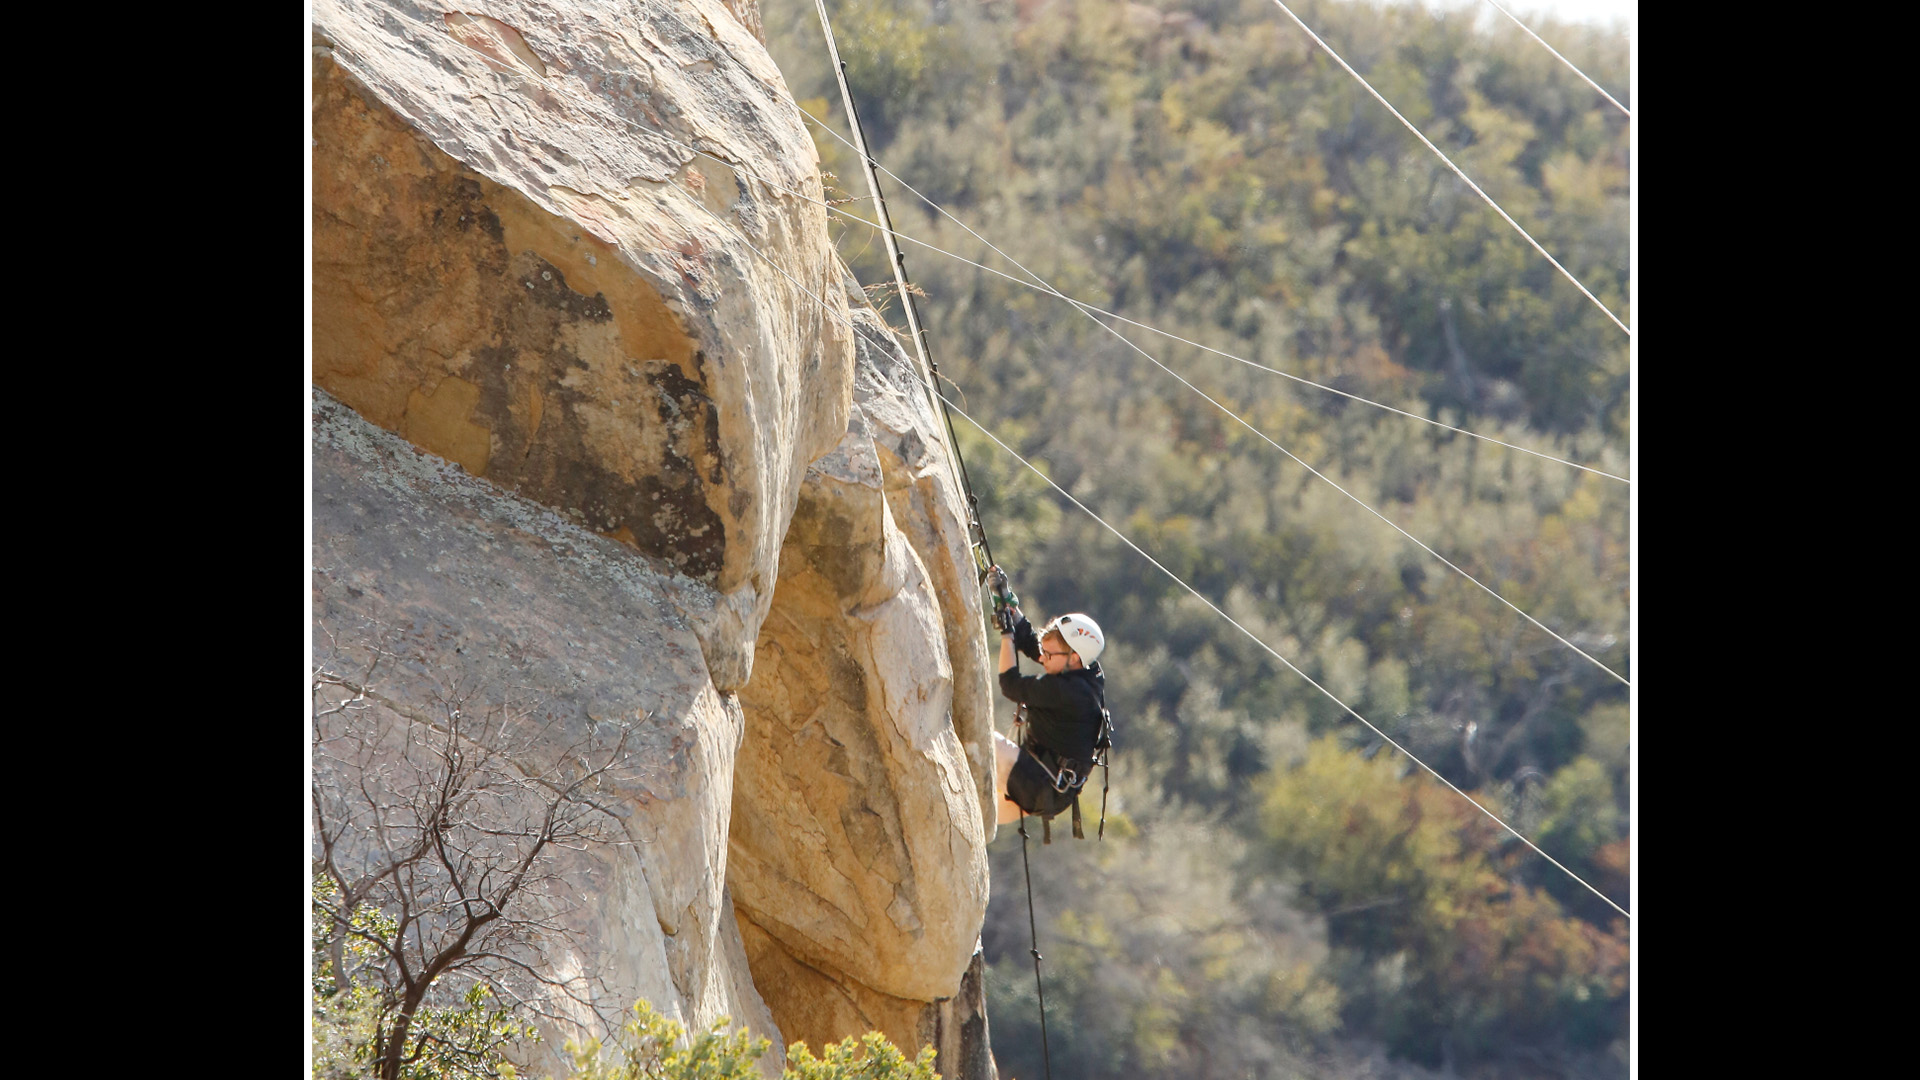 Tyler tries climbing the side of a mountain to retrieve his half of the next clue.